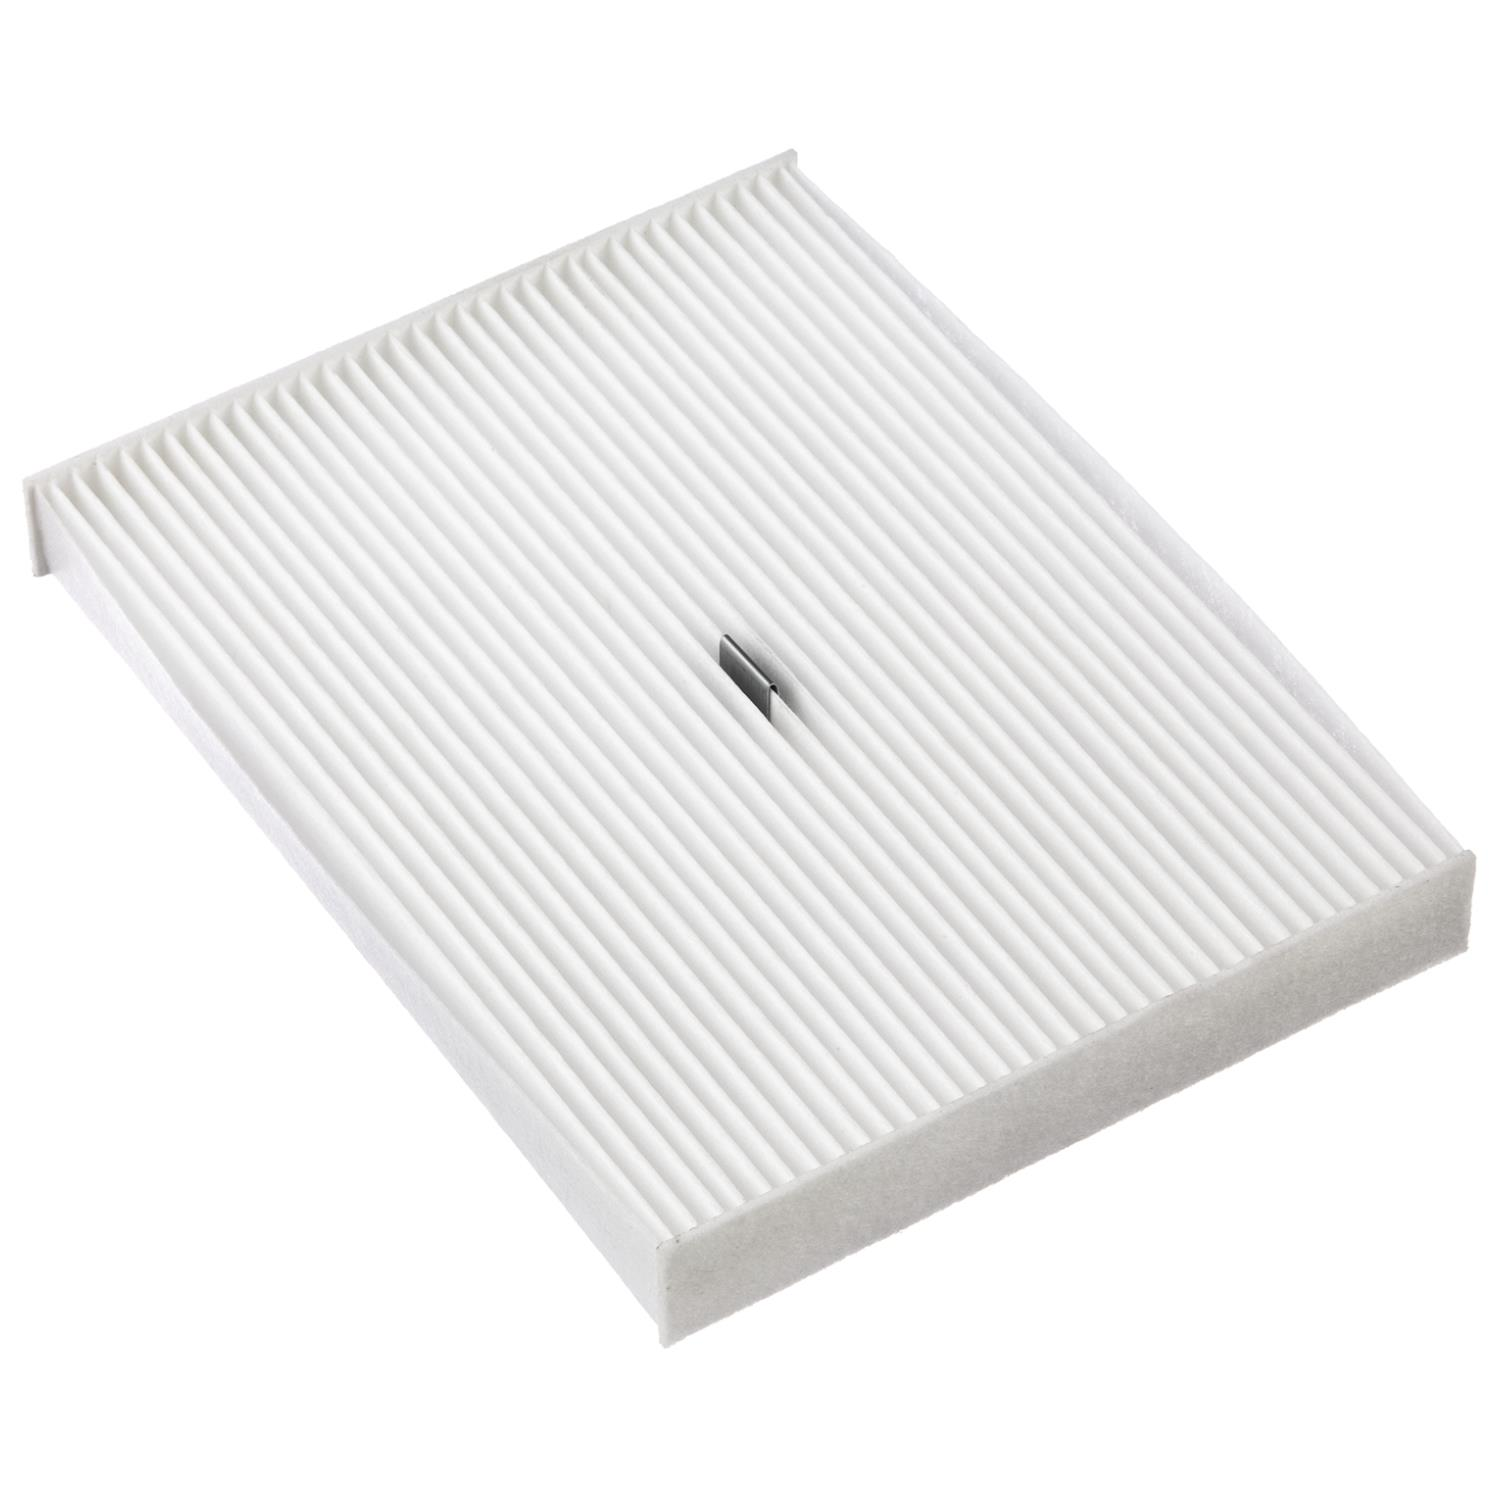 Atp Automotive Cf 252 Replacement Cabin Filter